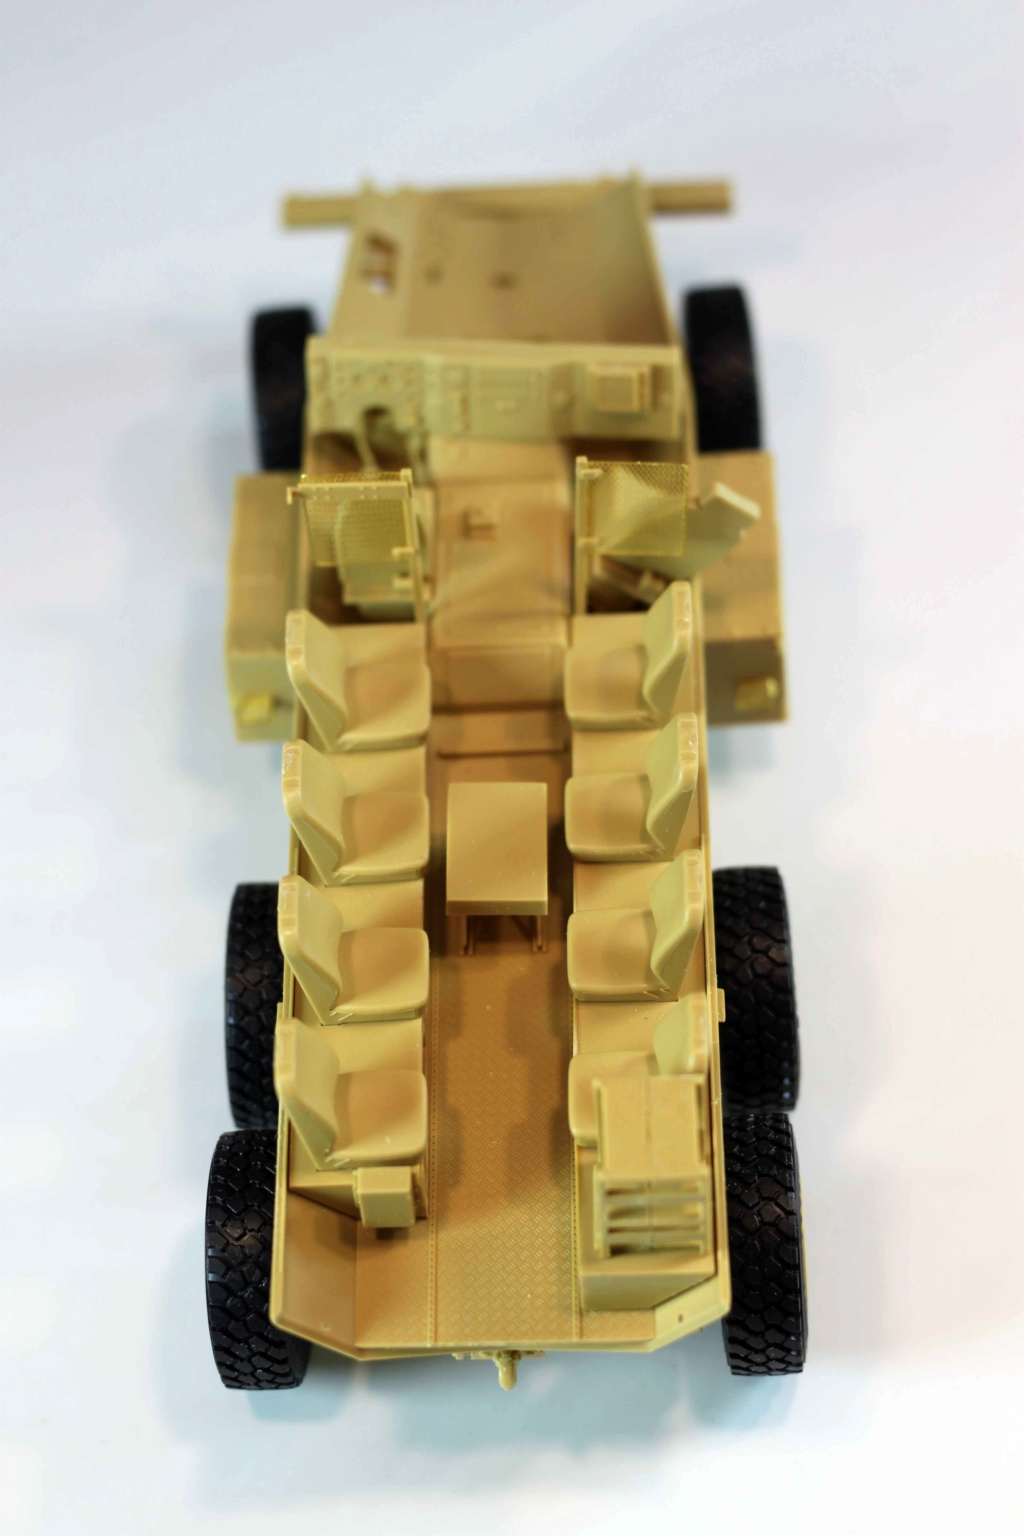 U.S. COUGAR 6X6 Mrap vehicle MENG 1/35 - Page 2 Img_9817